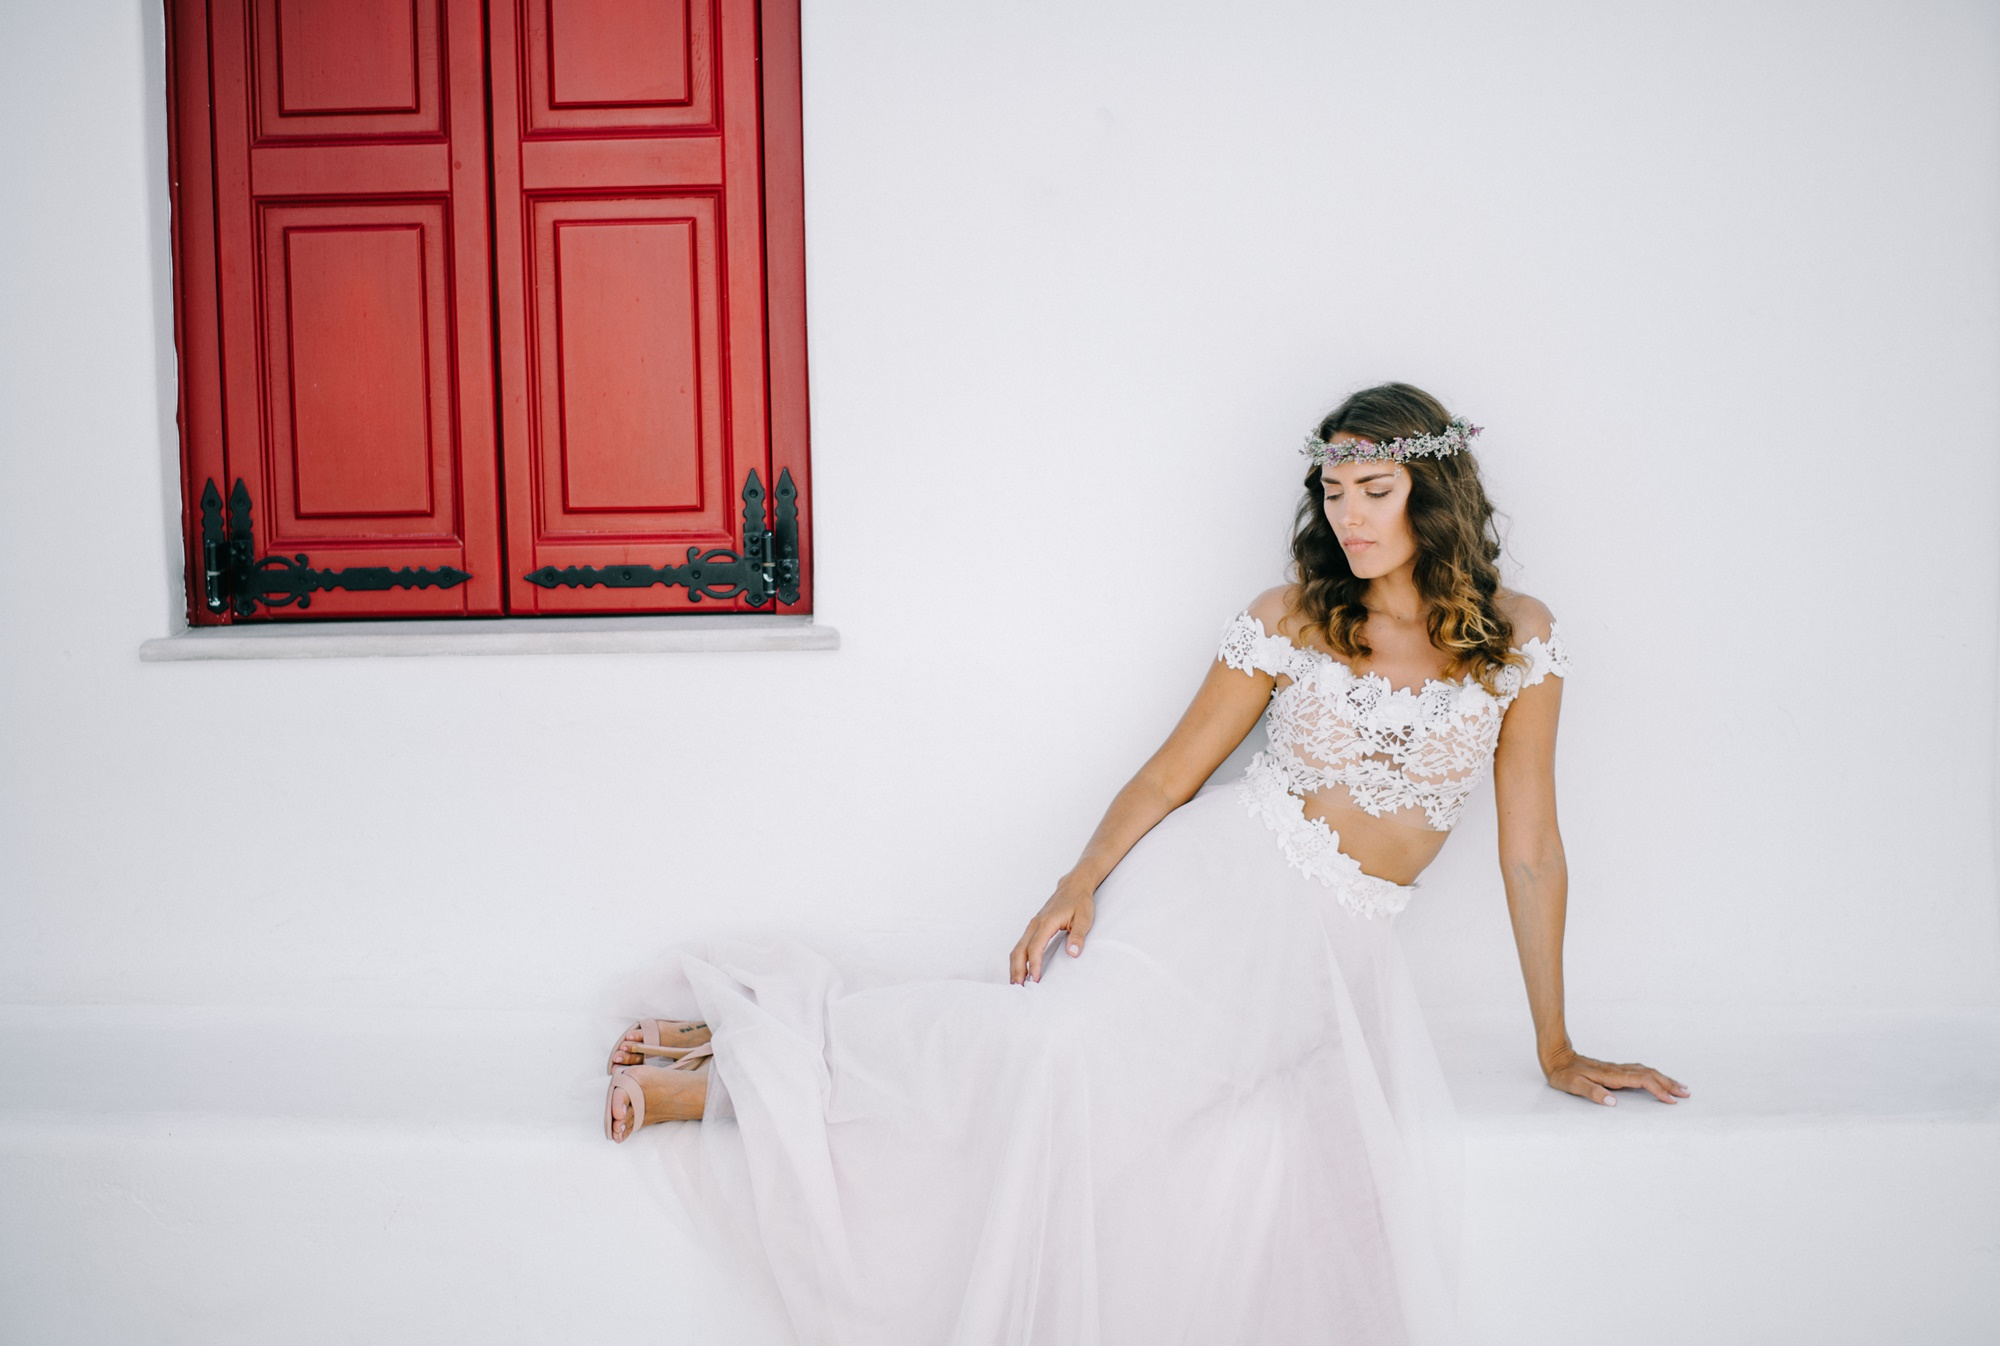 Bridal fashion shoot in Mykonos